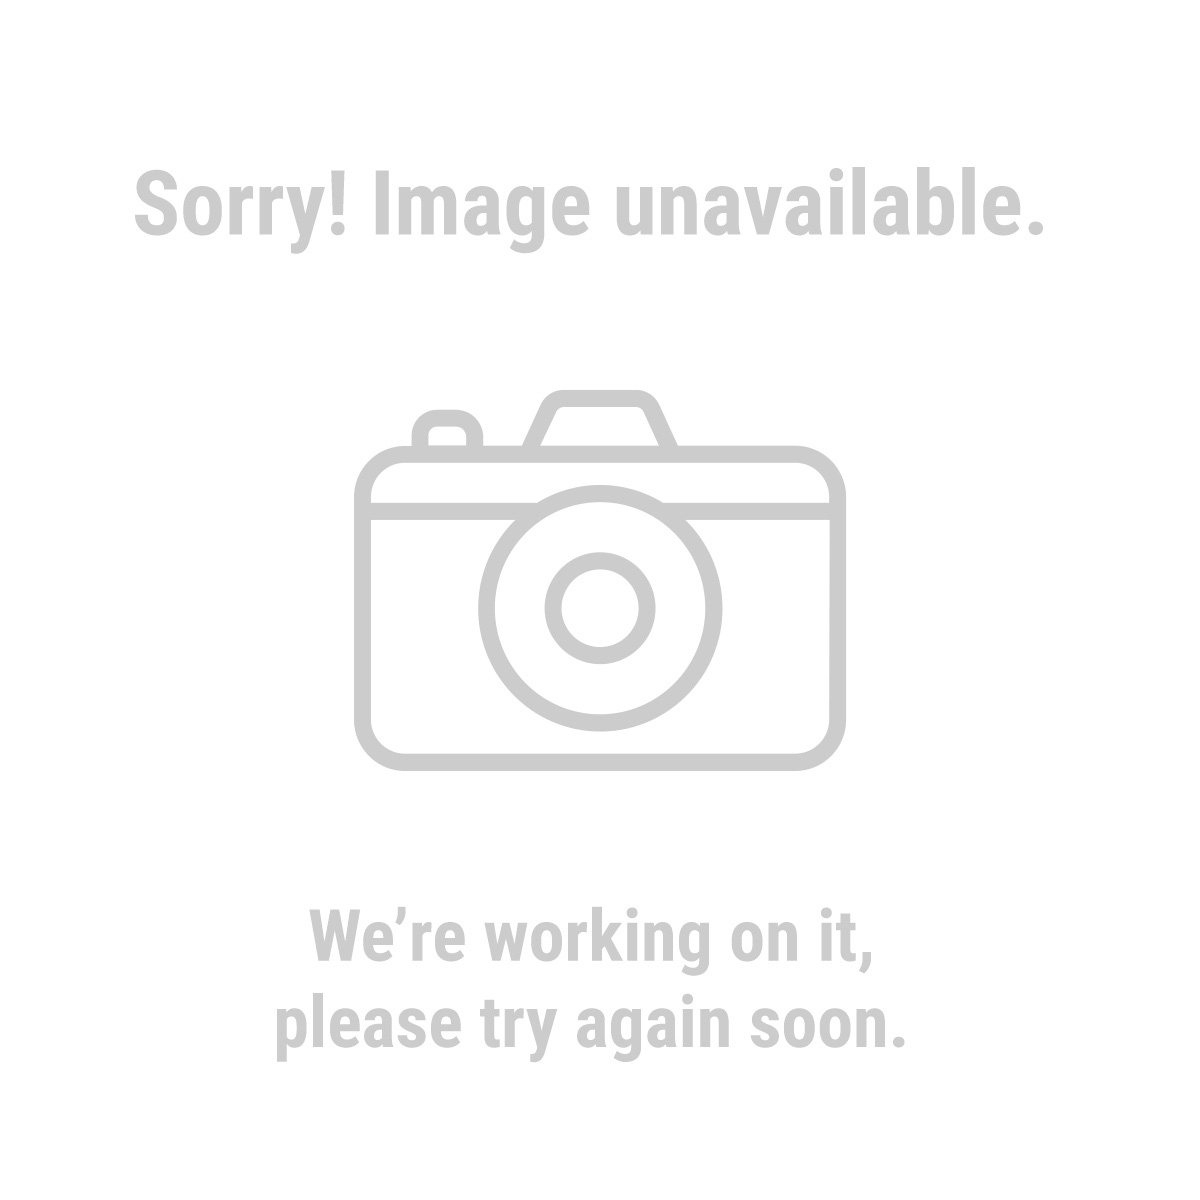 Chicago Electric Power Tools 61440 7-1/4 in. 10 Amp Heavy Duty Circular Saw With Laser Guide System